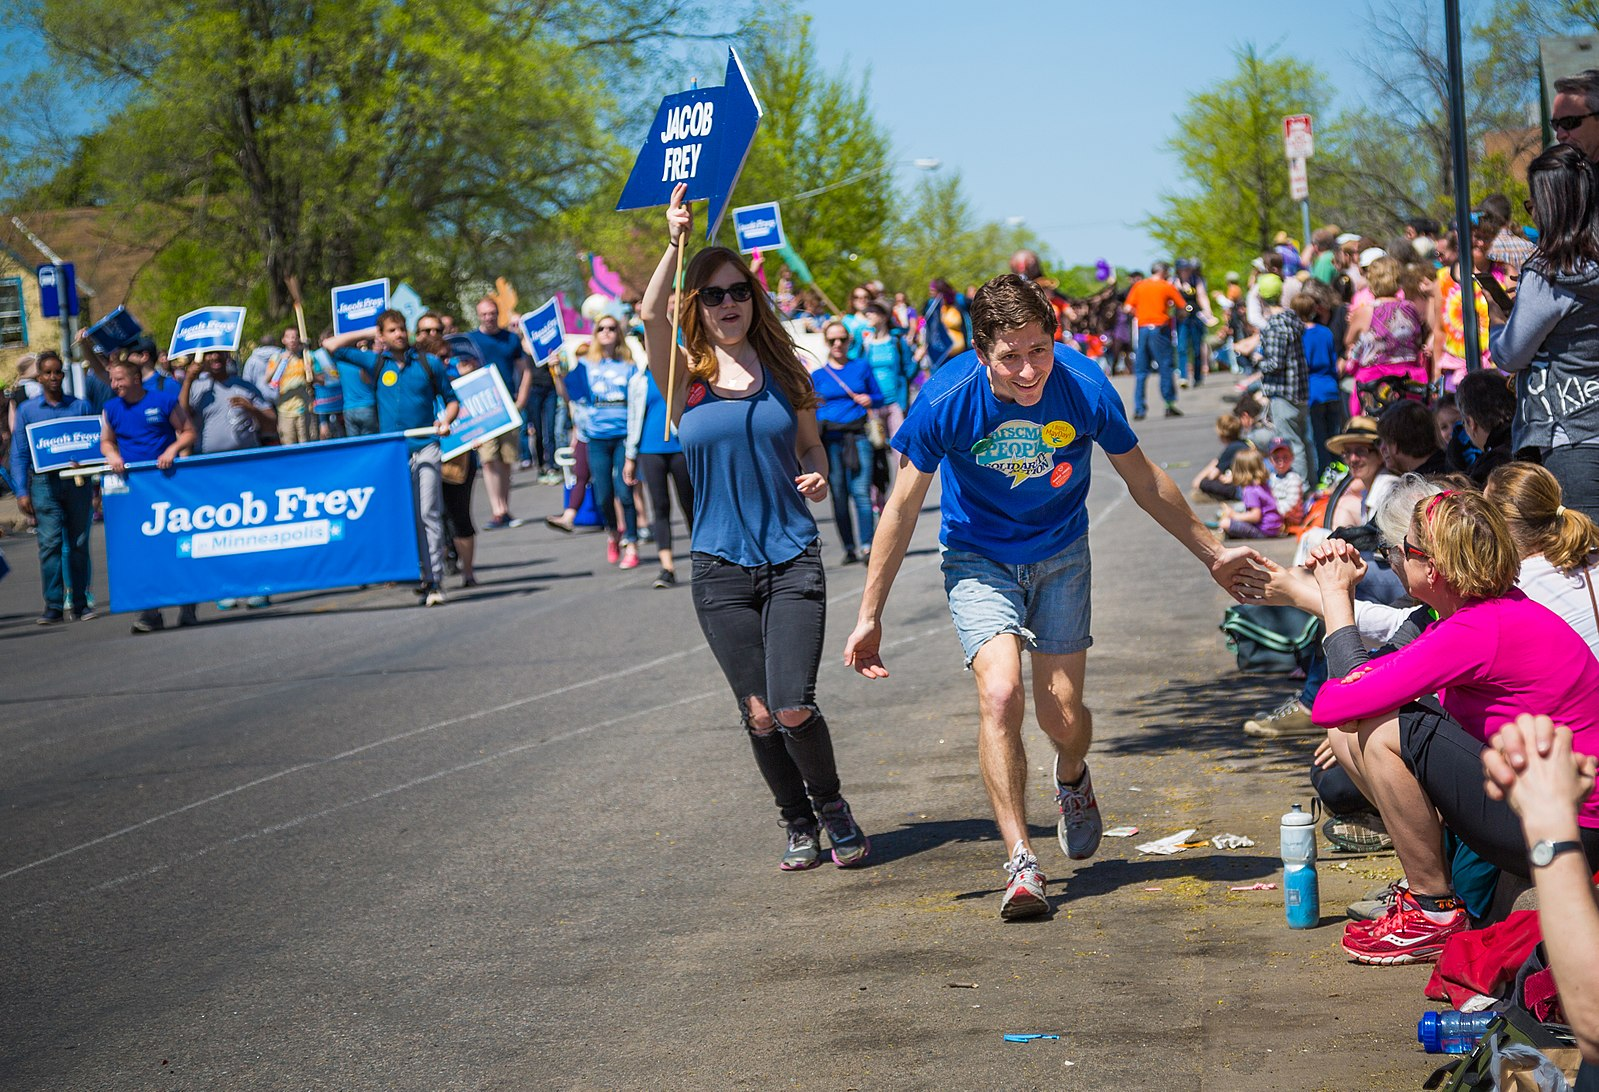 Jacob Frey campaigns in a parade. Photo credit: Wikimedia Commons